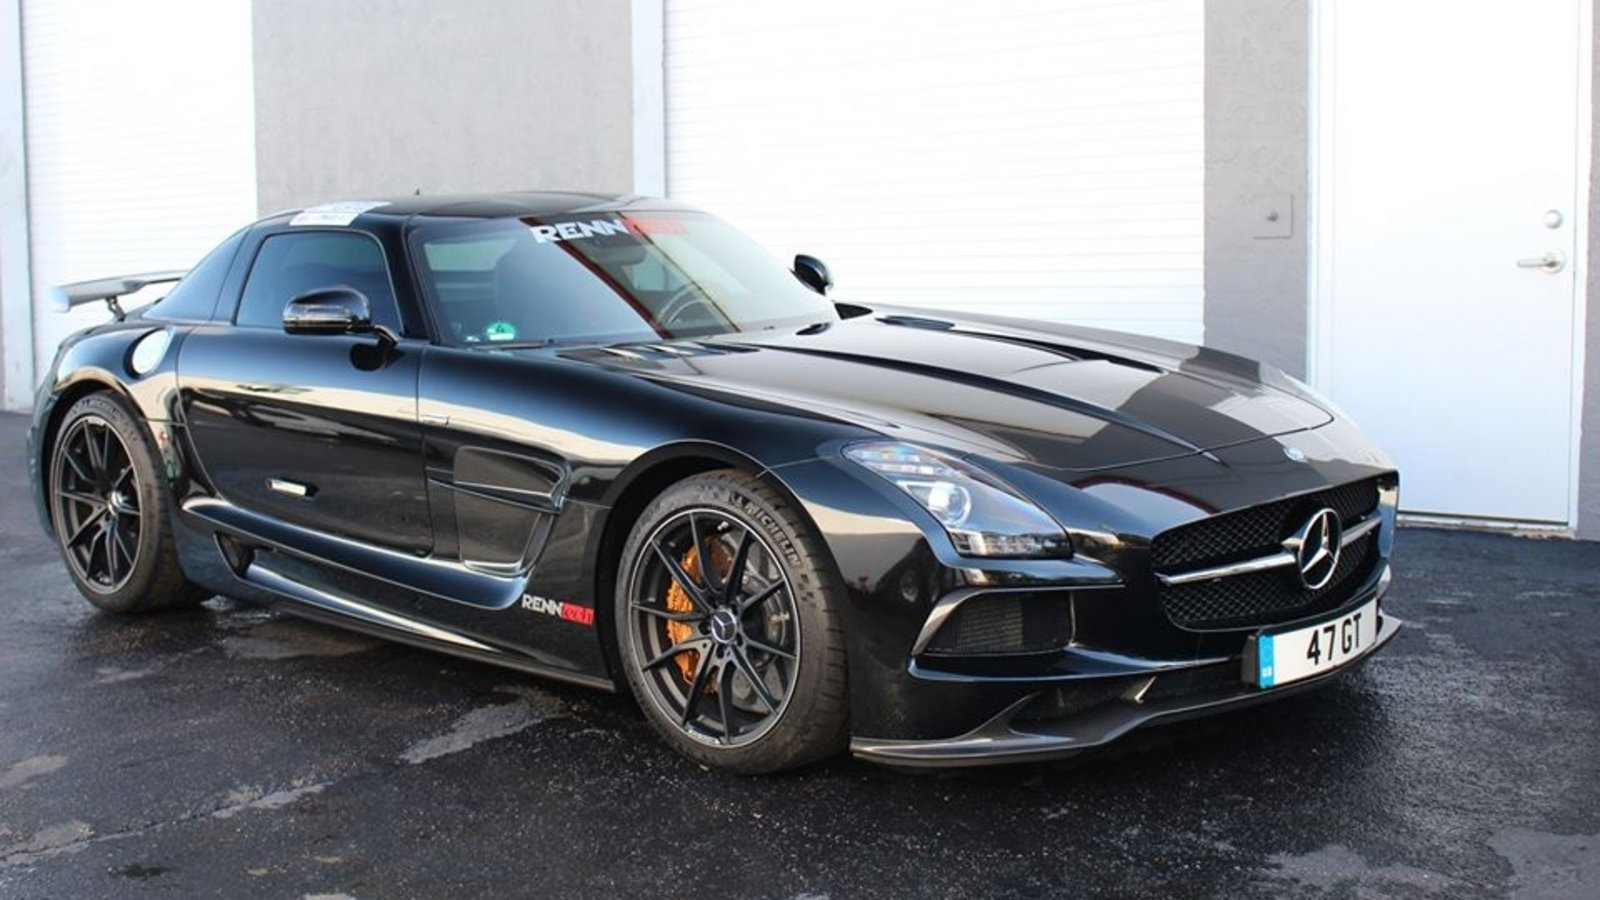 2014 mercedes benz sls amg black series by renntech review. Black Bedroom Furniture Sets. Home Design Ideas